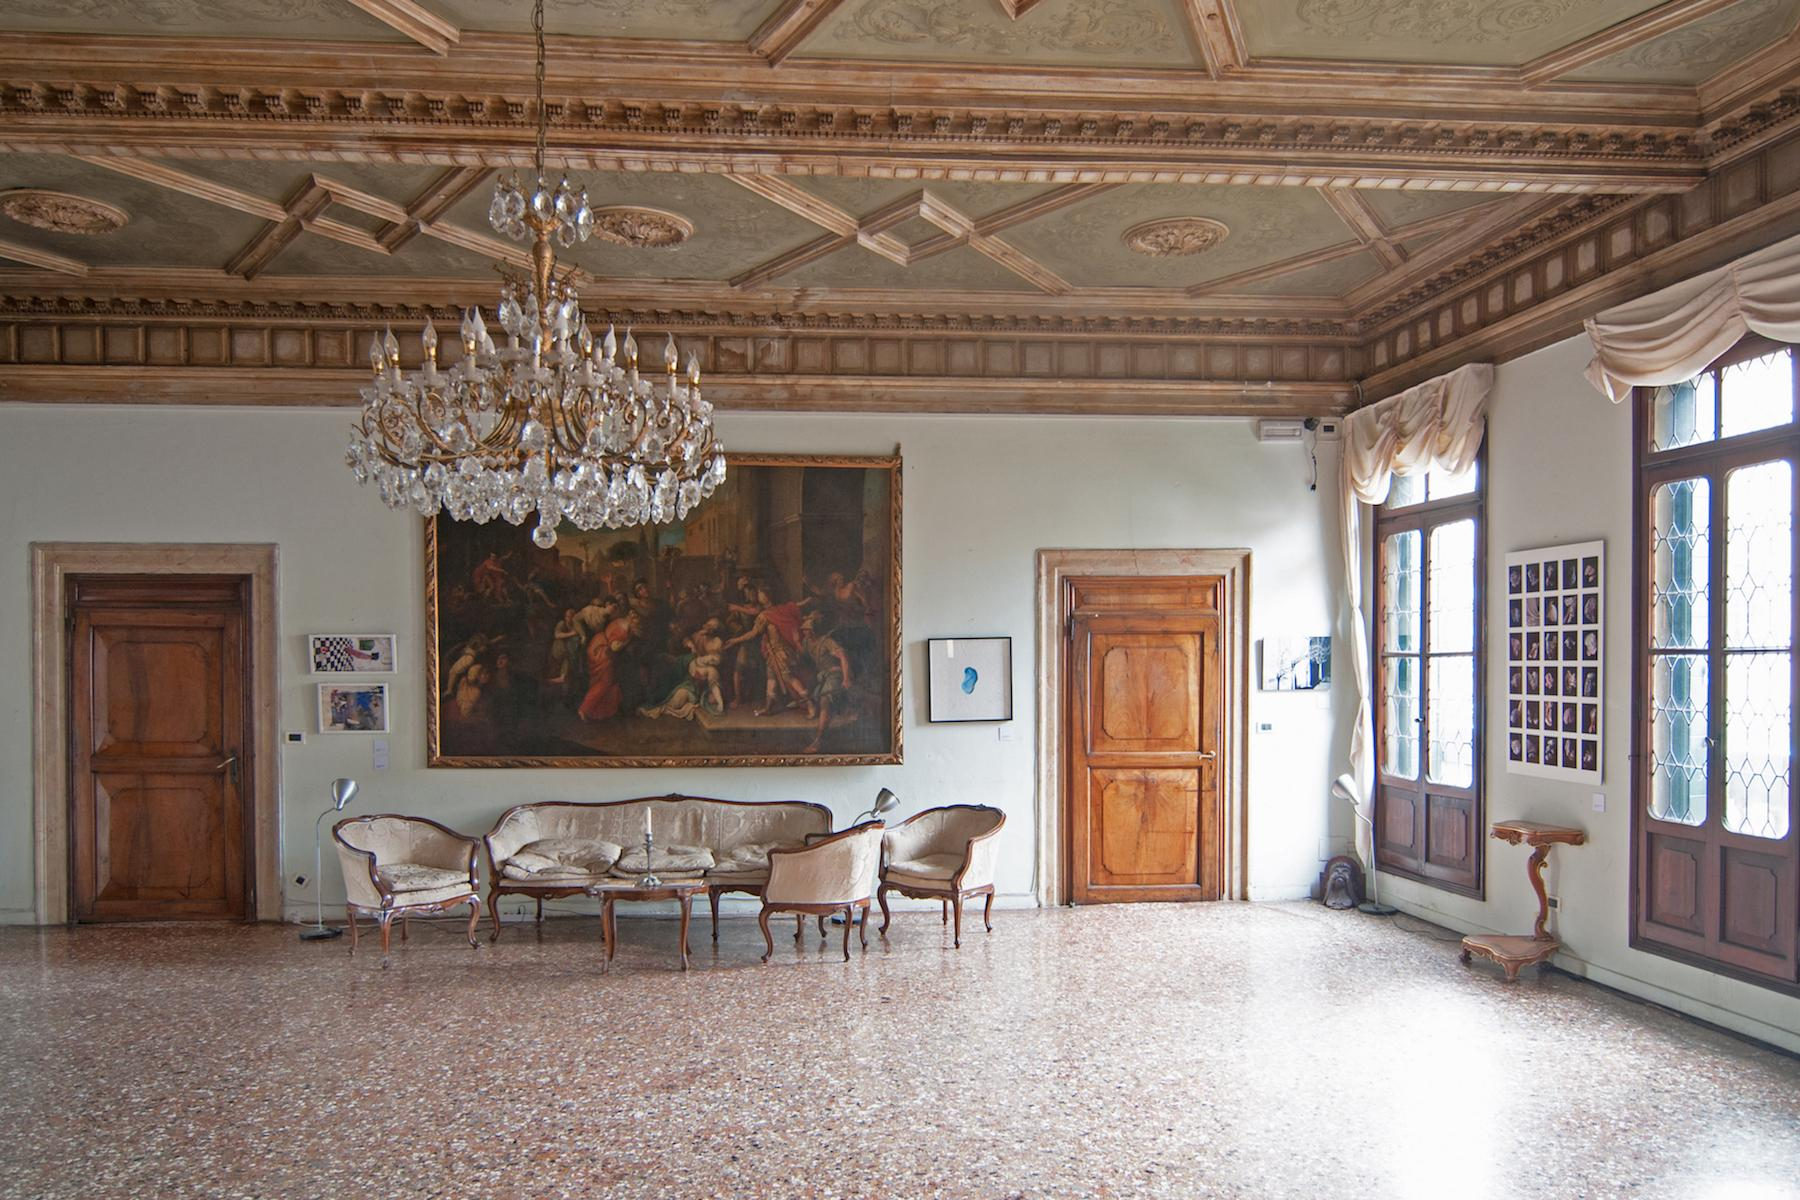 16th Century Palazzetto with permissions for a 23 bedroom hotel - 5